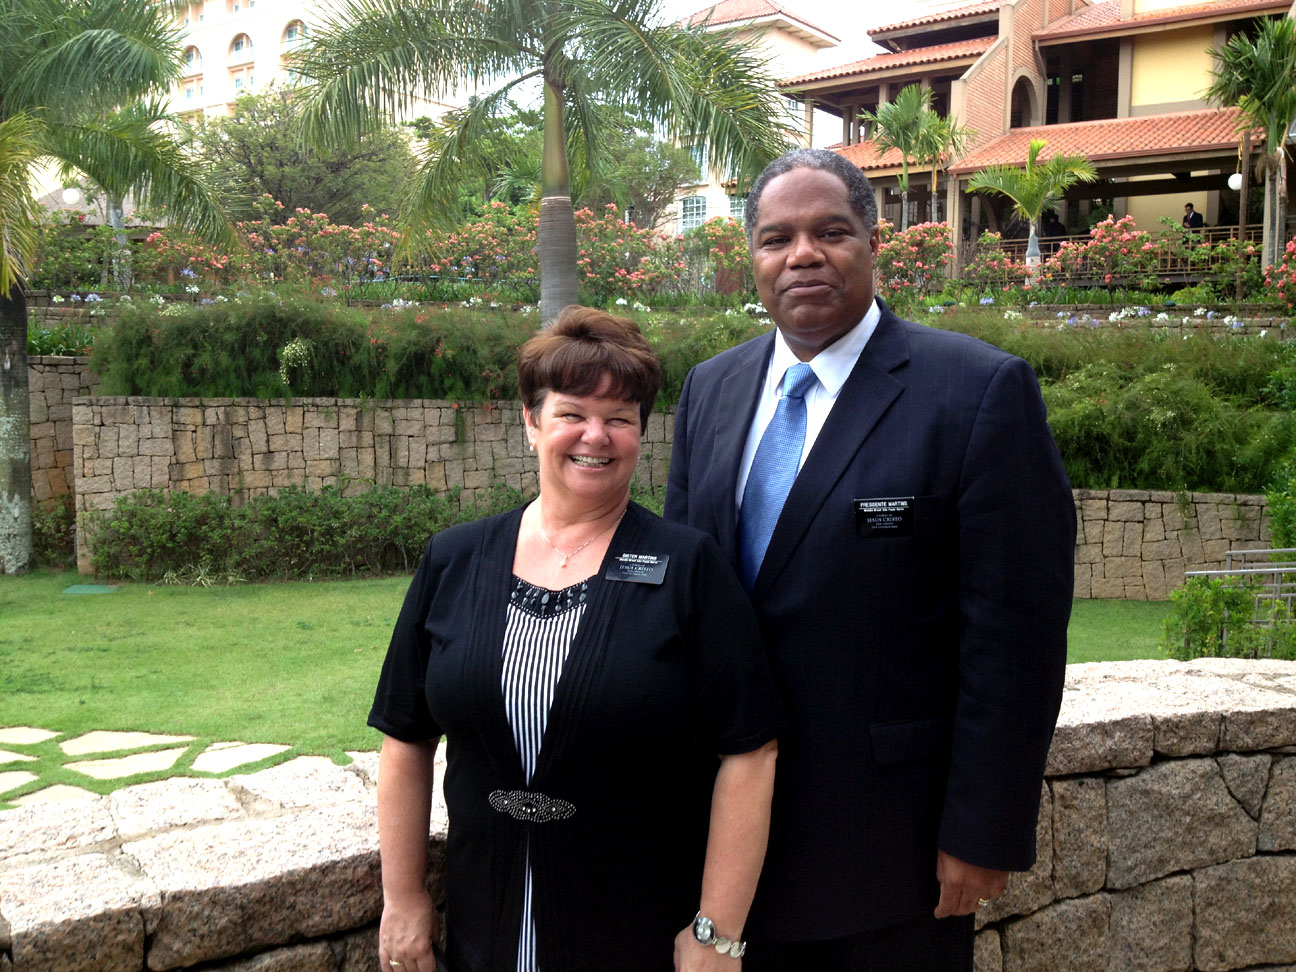 President Marcus Martins and Sister Mirian Martins in 2012. He presided over the Brazil Sao Paulo North Mission 2011-2014.